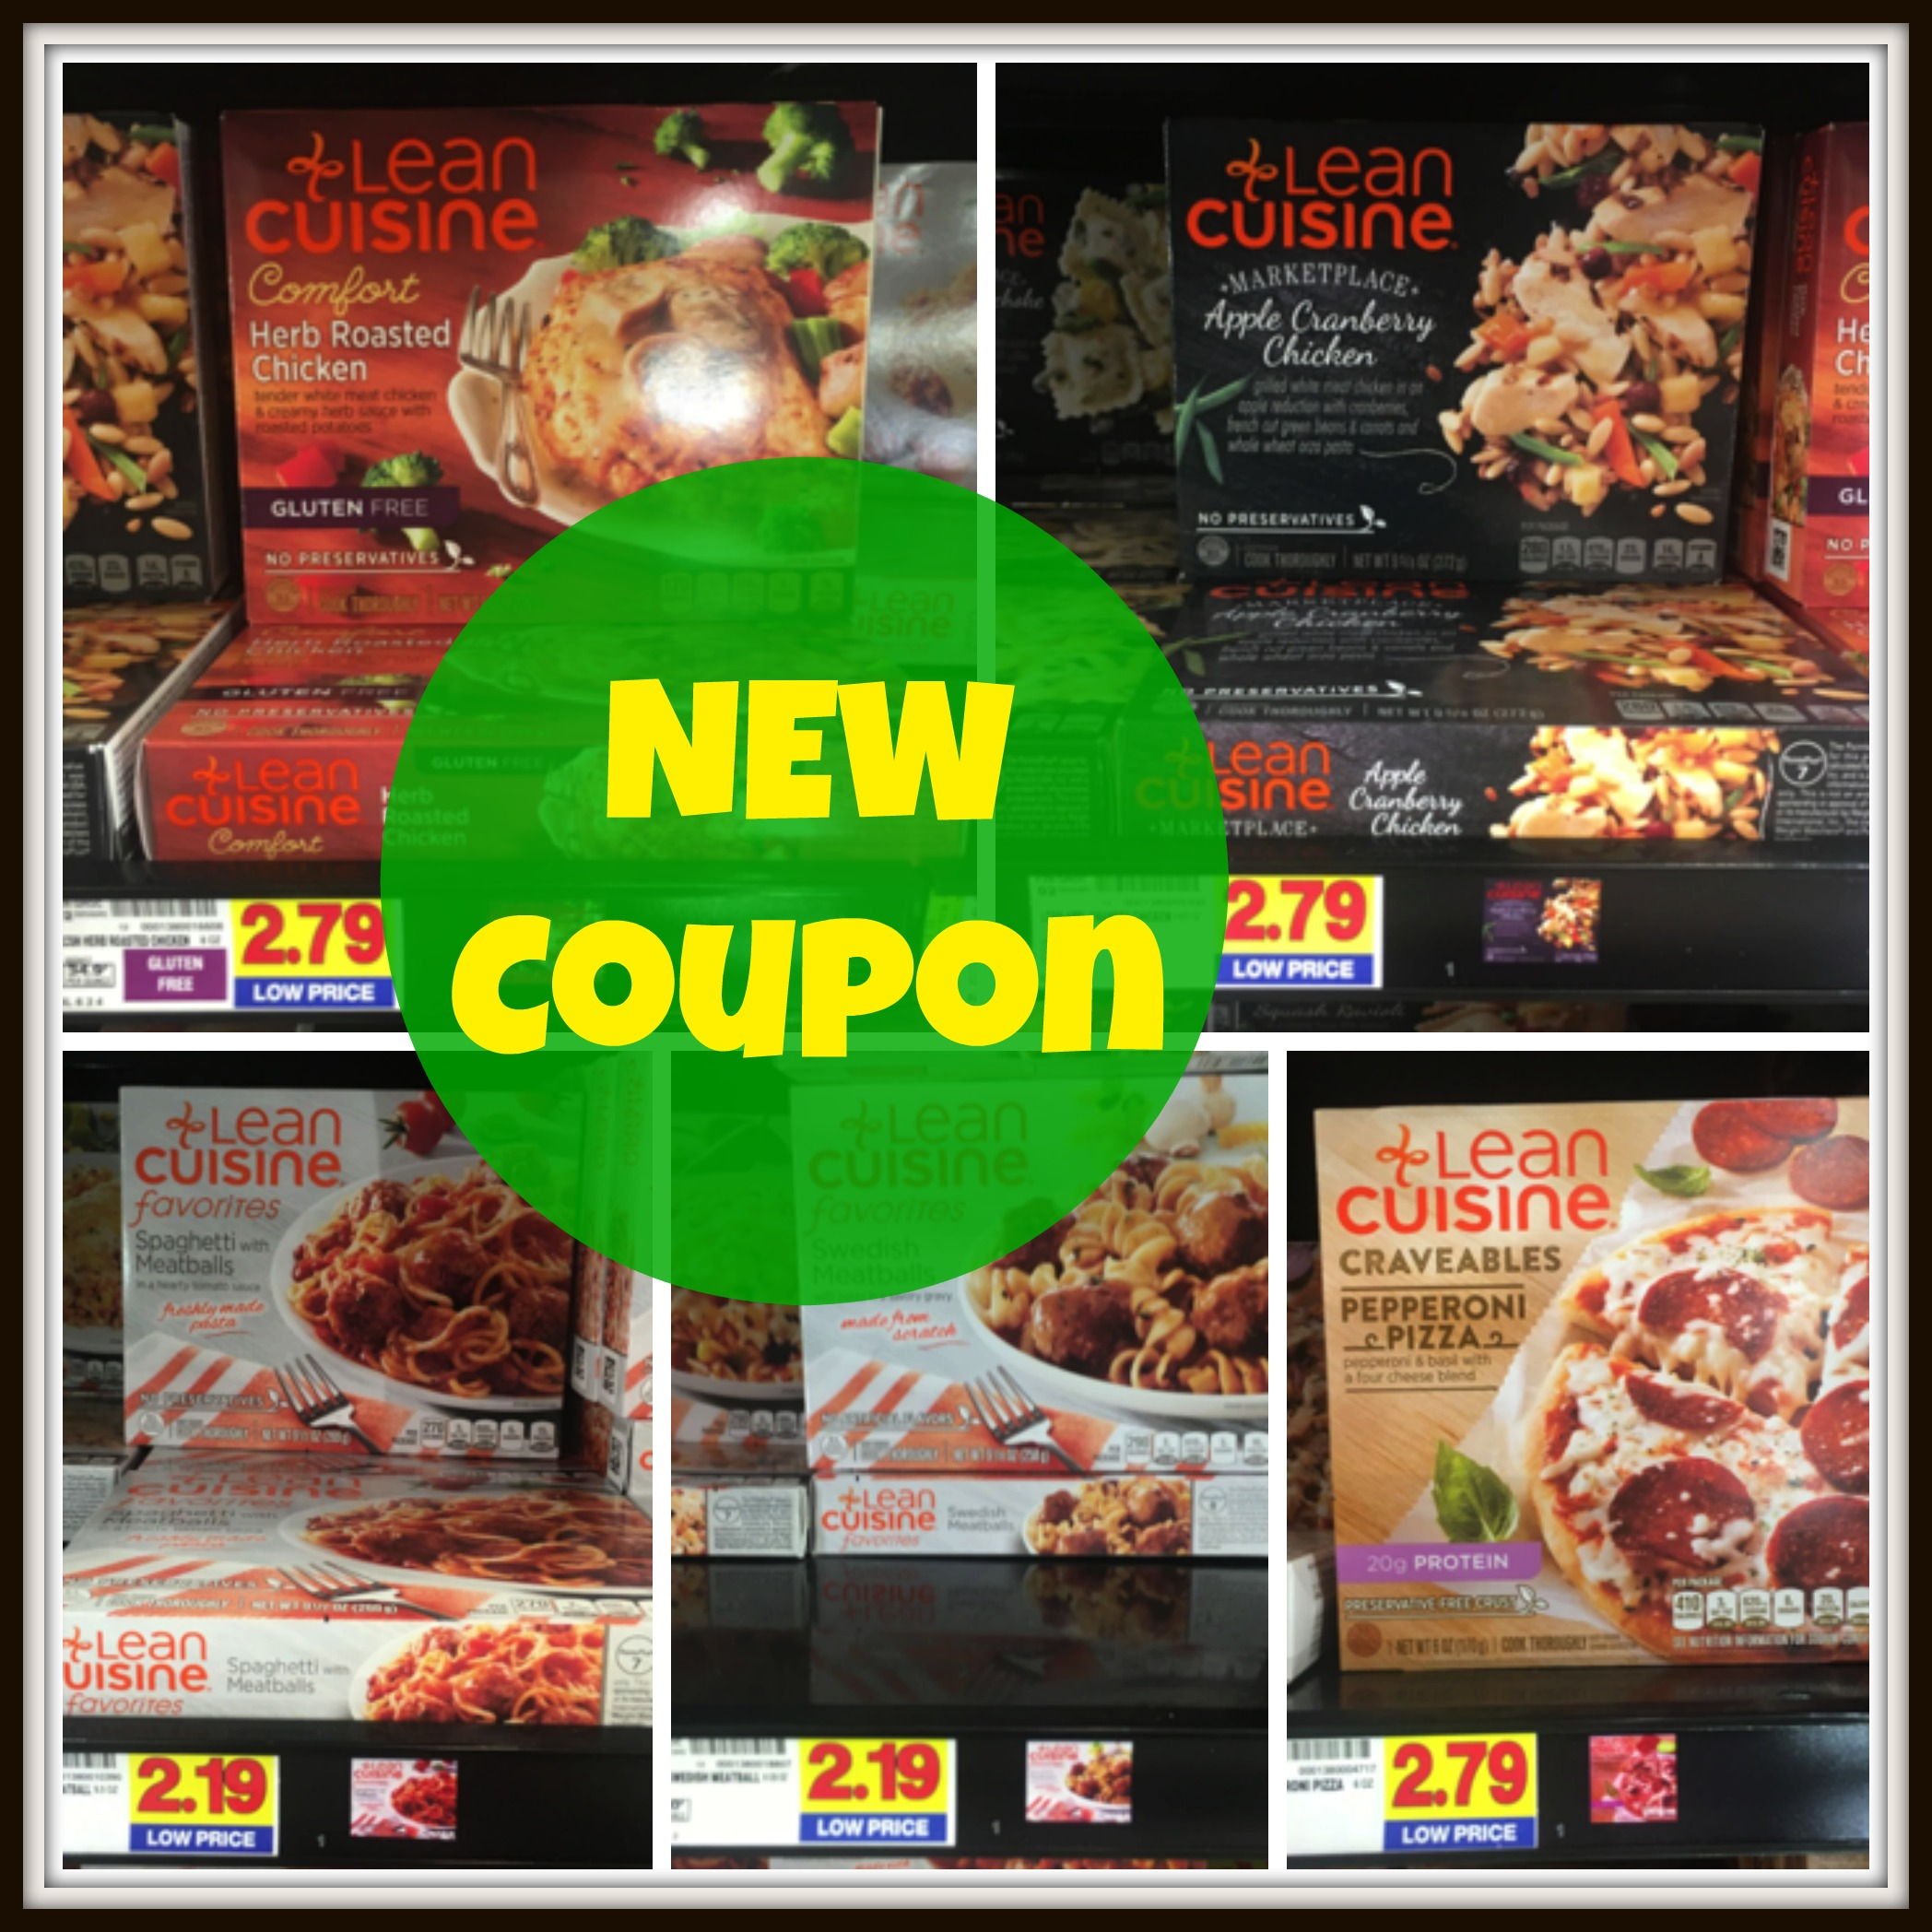 image regarding Lean Cuisine Coupons Printable named Fresh new Lean Delicacies Coupon + Kroger Offer Situations! Kroger Krazy